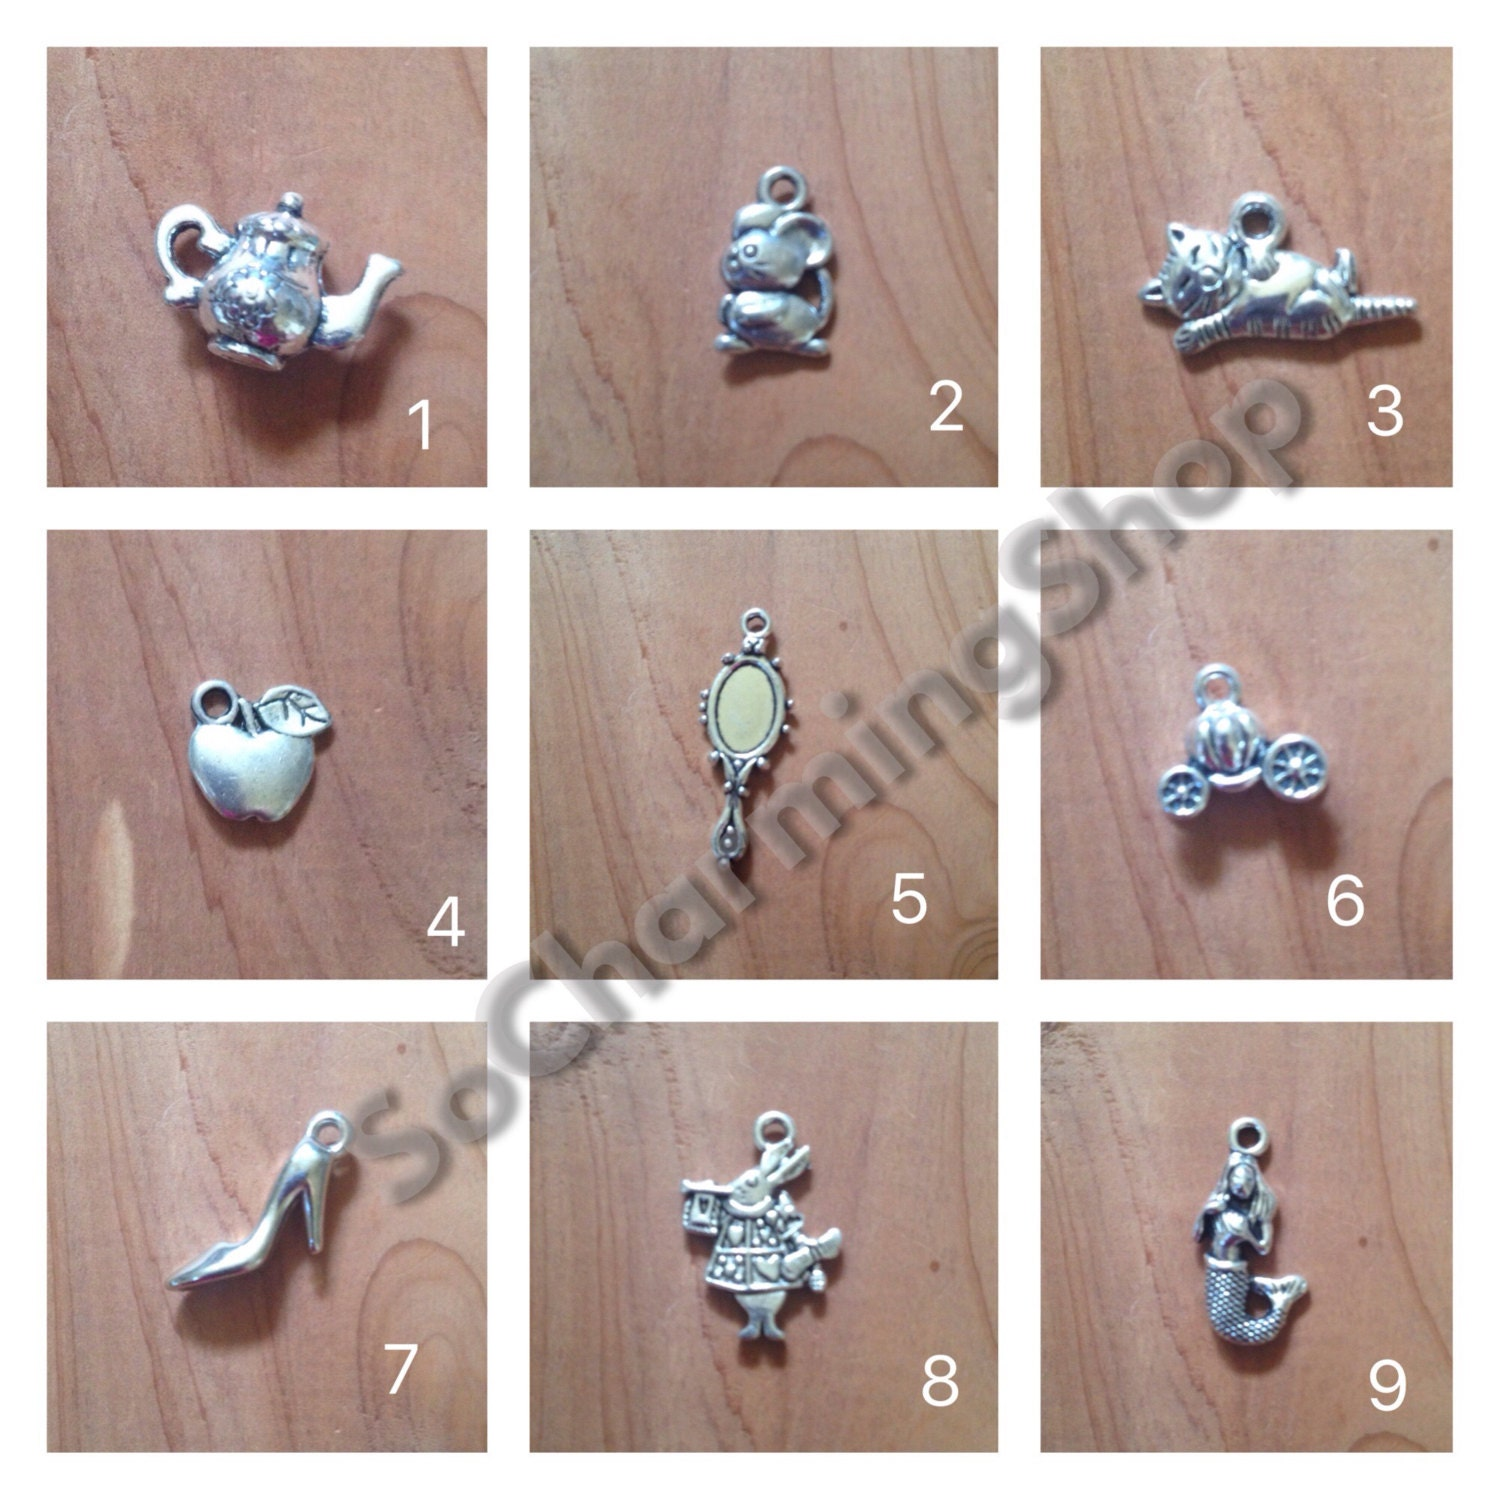 Charm pendants charm jewelry heart charms cross for Just my style personalized jewelry studio